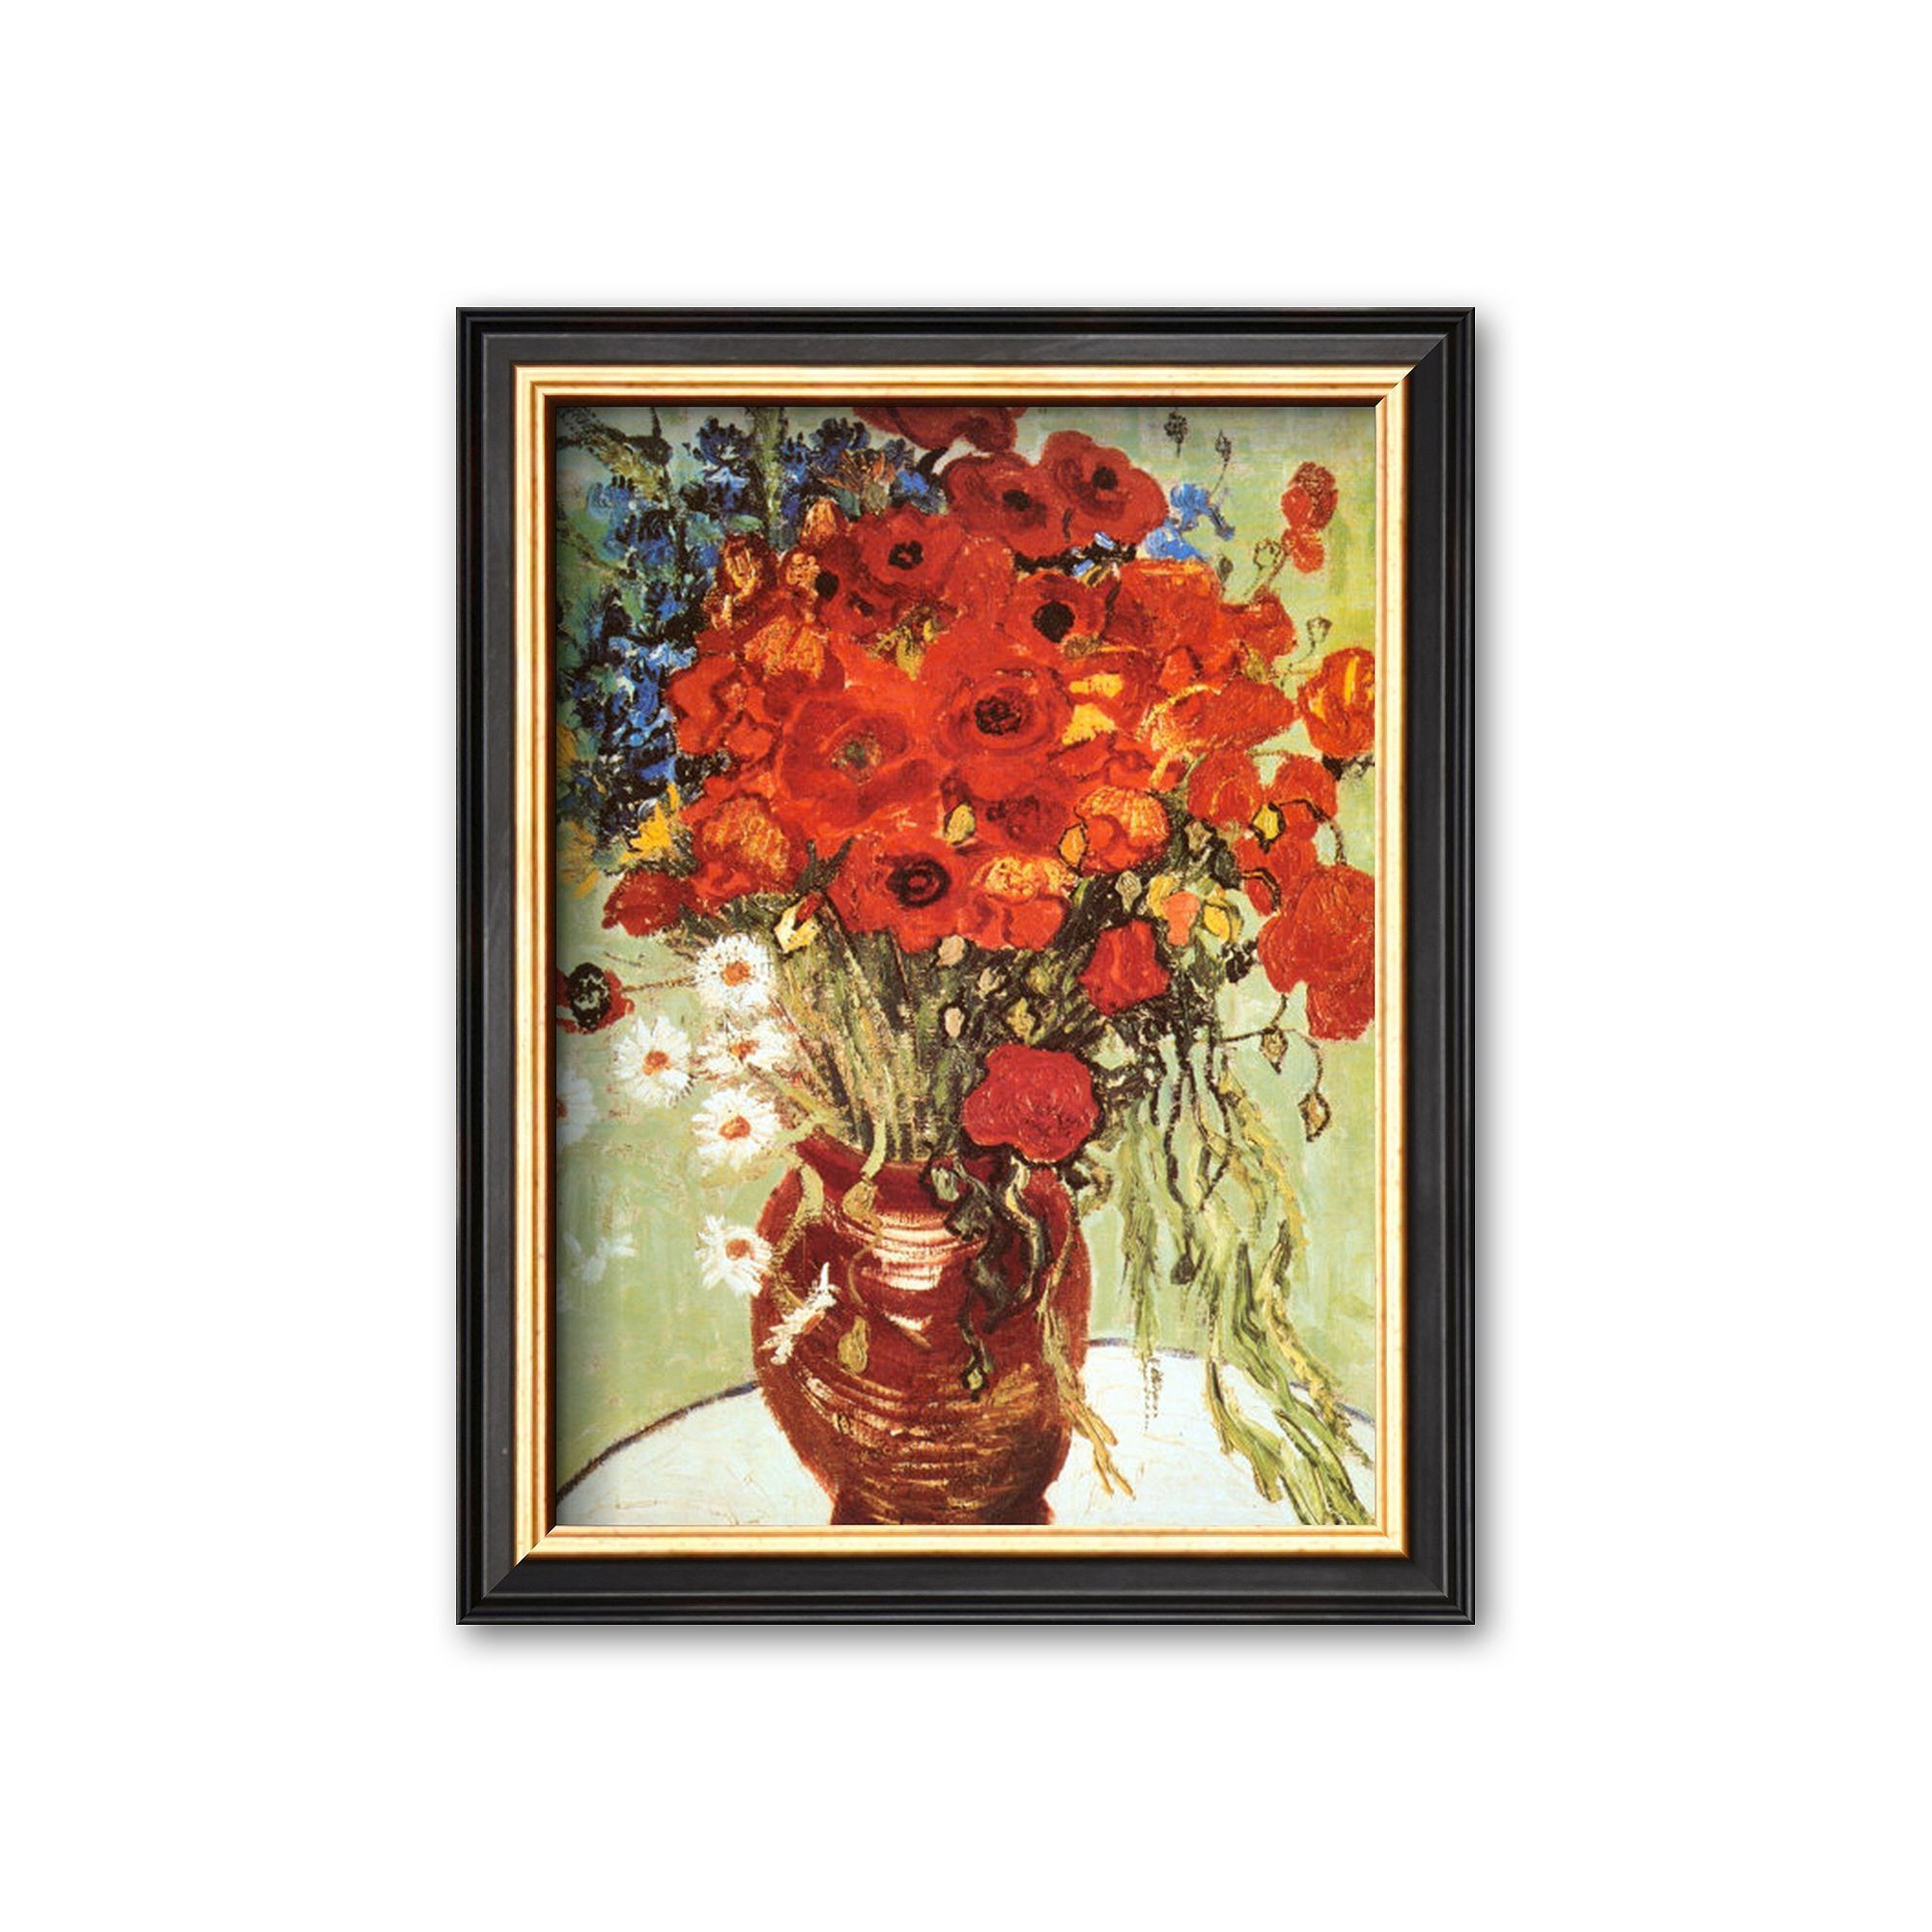 vincent van gogh vase with red poppies of art com vase with daisies and poppies framed wall art by with regard to art com vase with daisies and poppies framed wall art by vincent van gogh